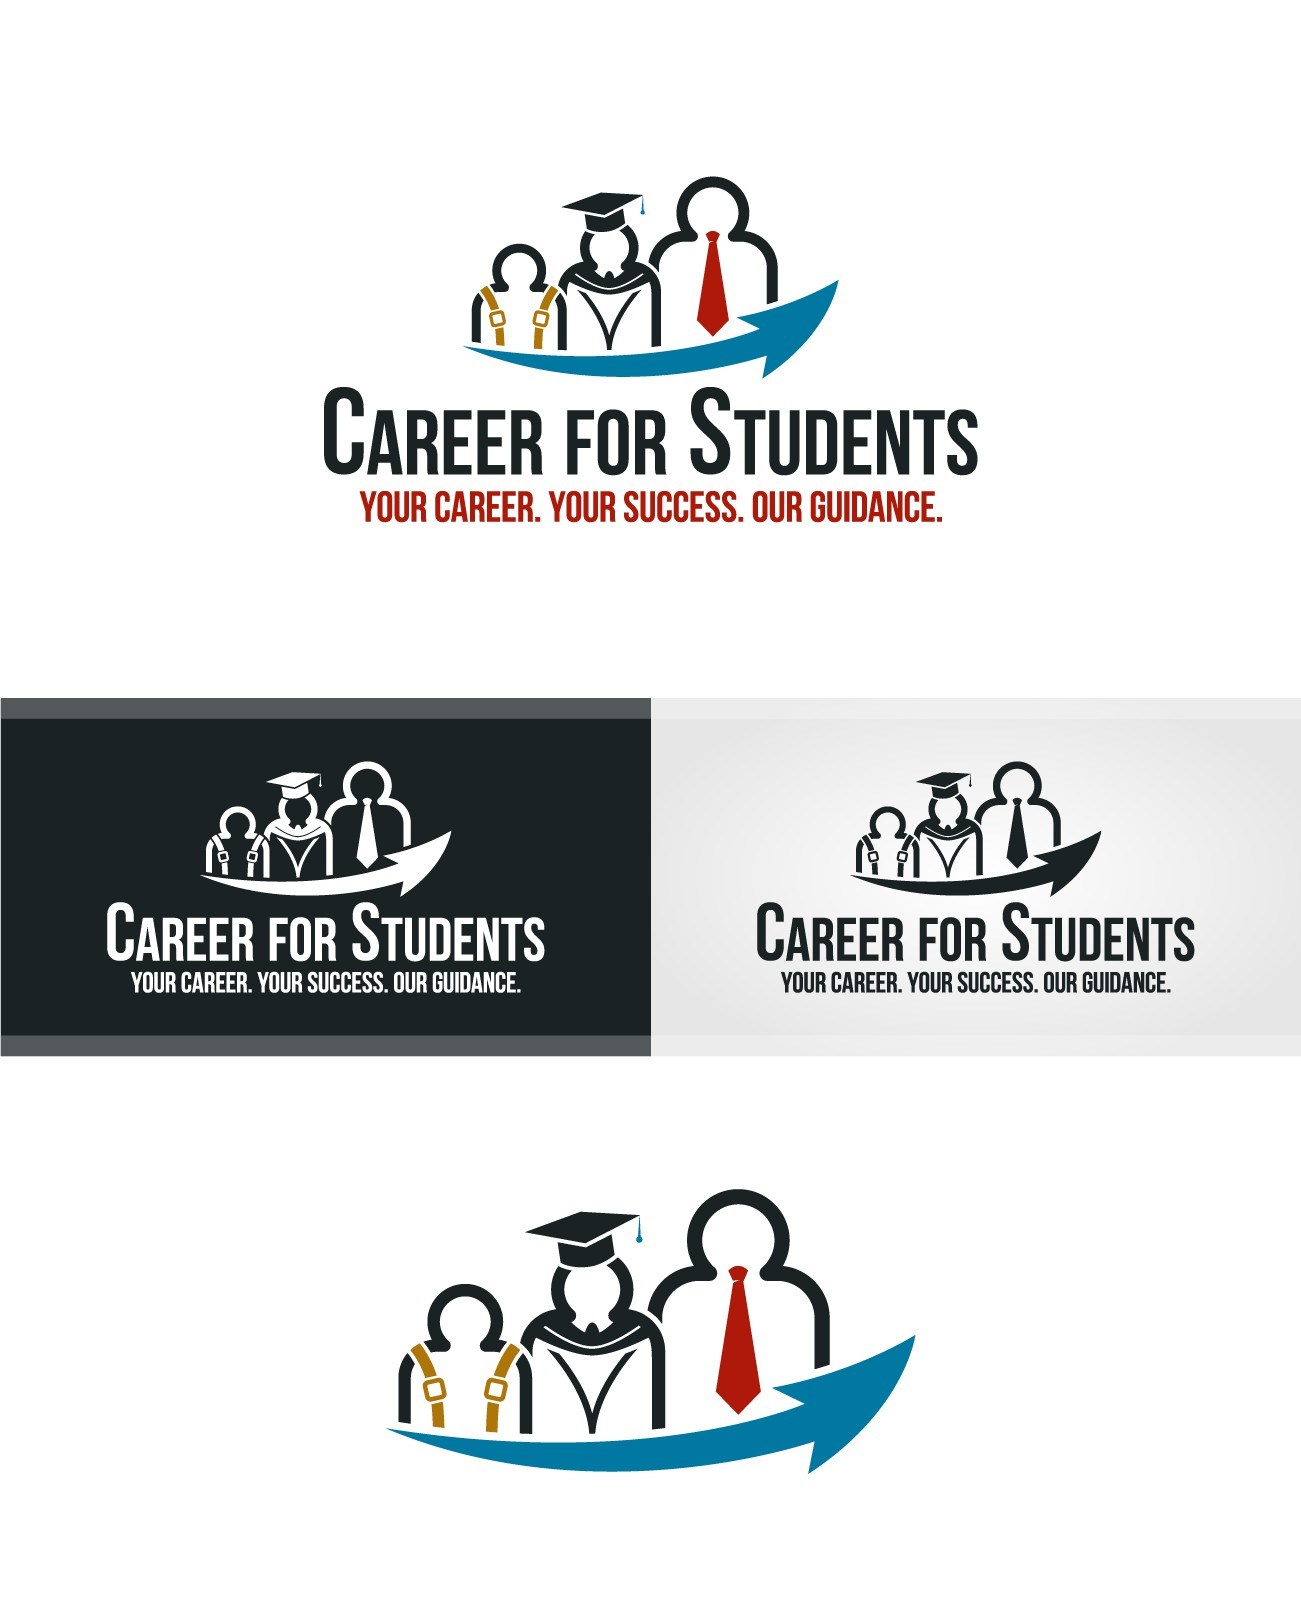 Logo needed to change students into world leaders